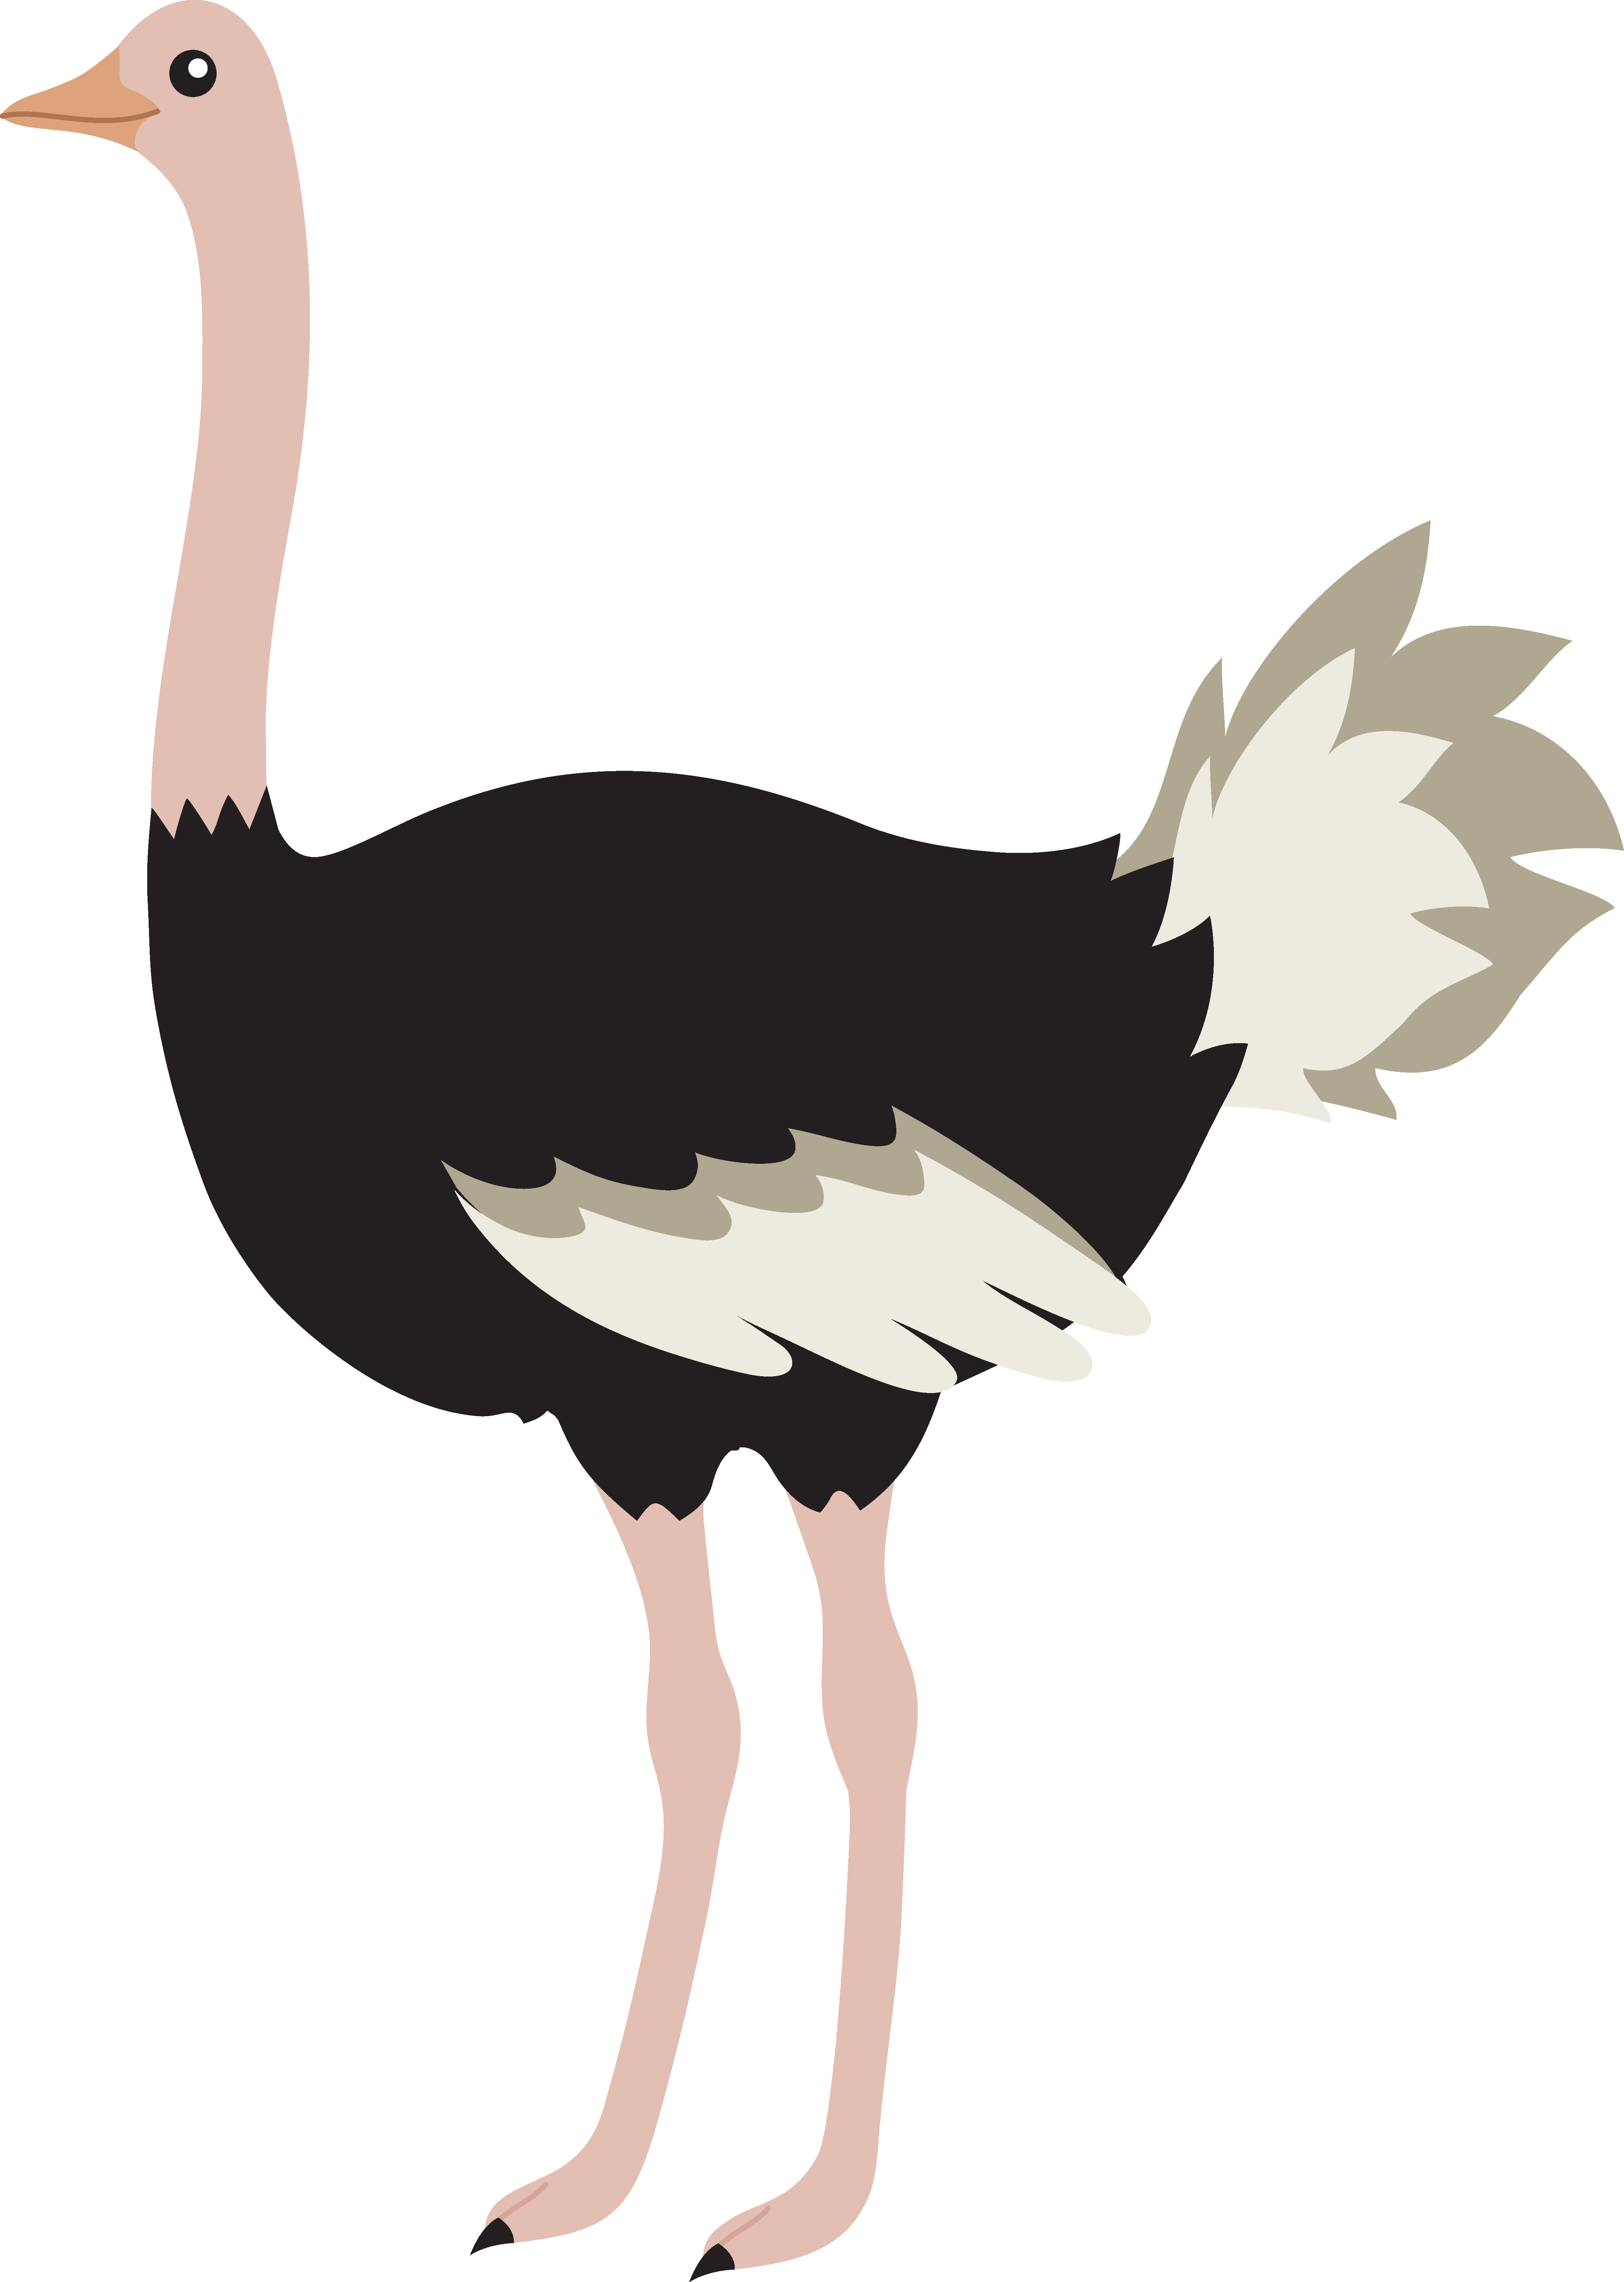 Cute Cartoon Ostrich Images & Pictures.